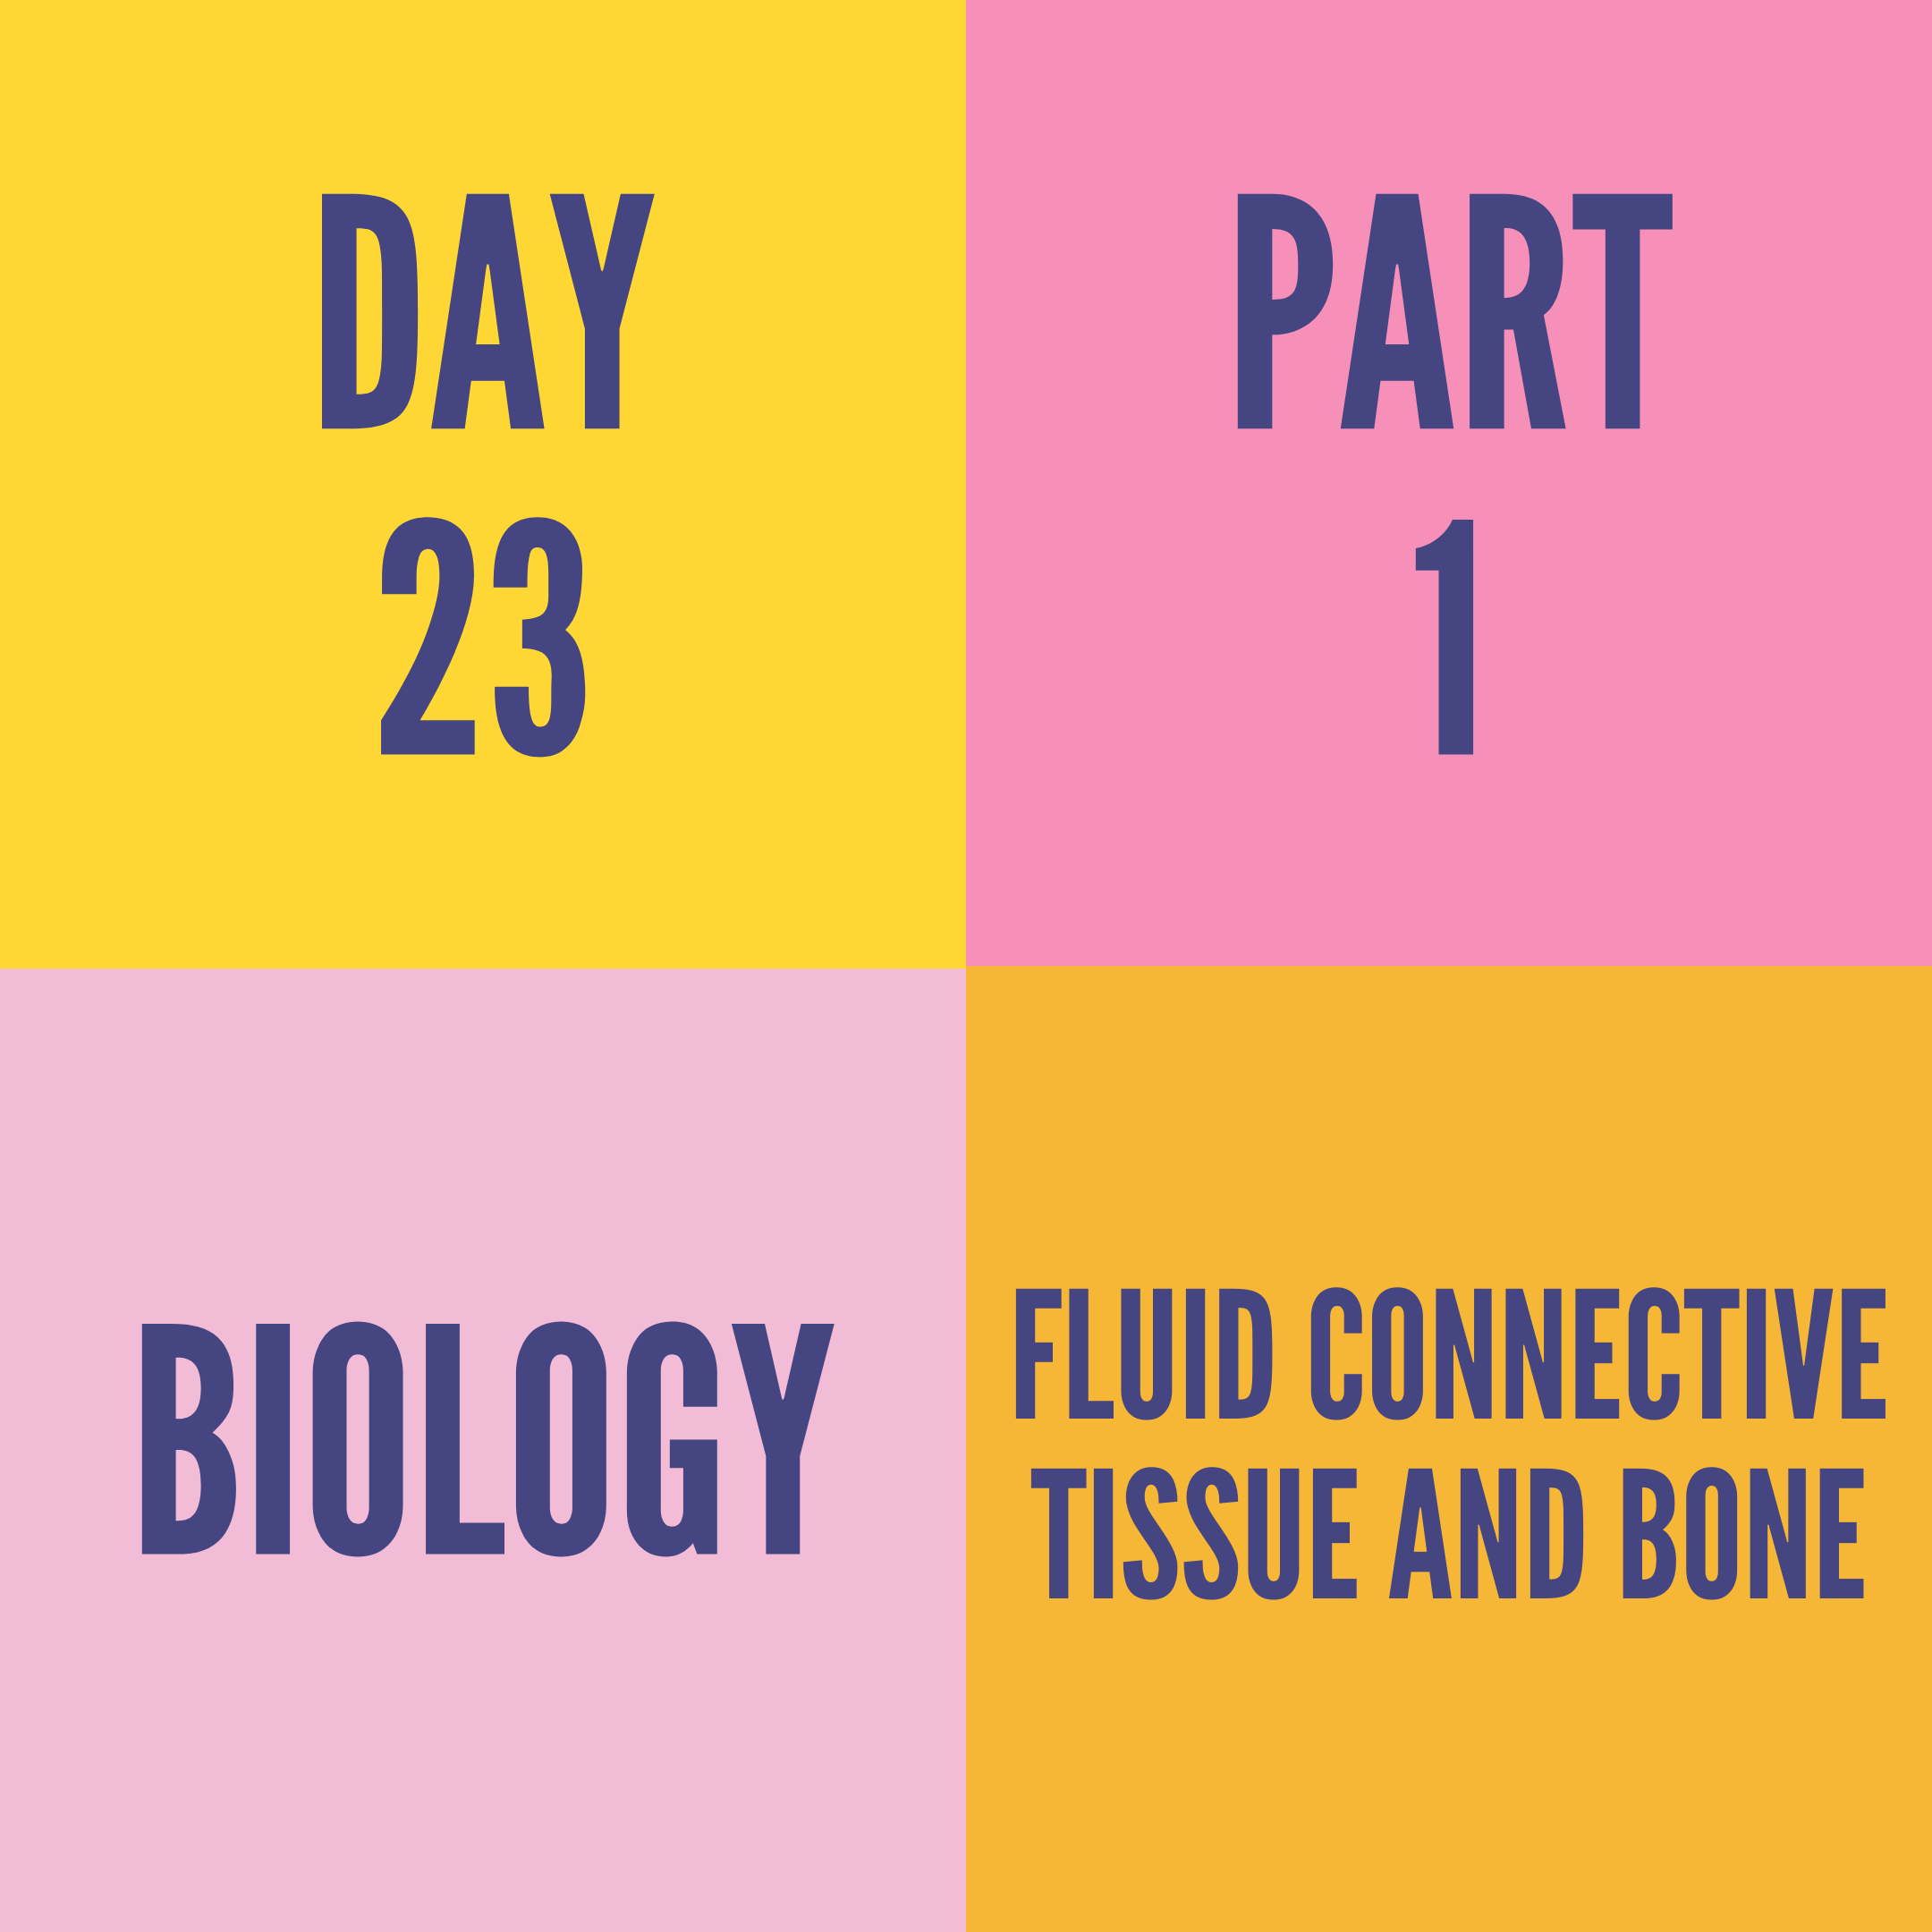 DAY-23 PART-1 FLUID CONNECTIVE TISSUE AND BONE